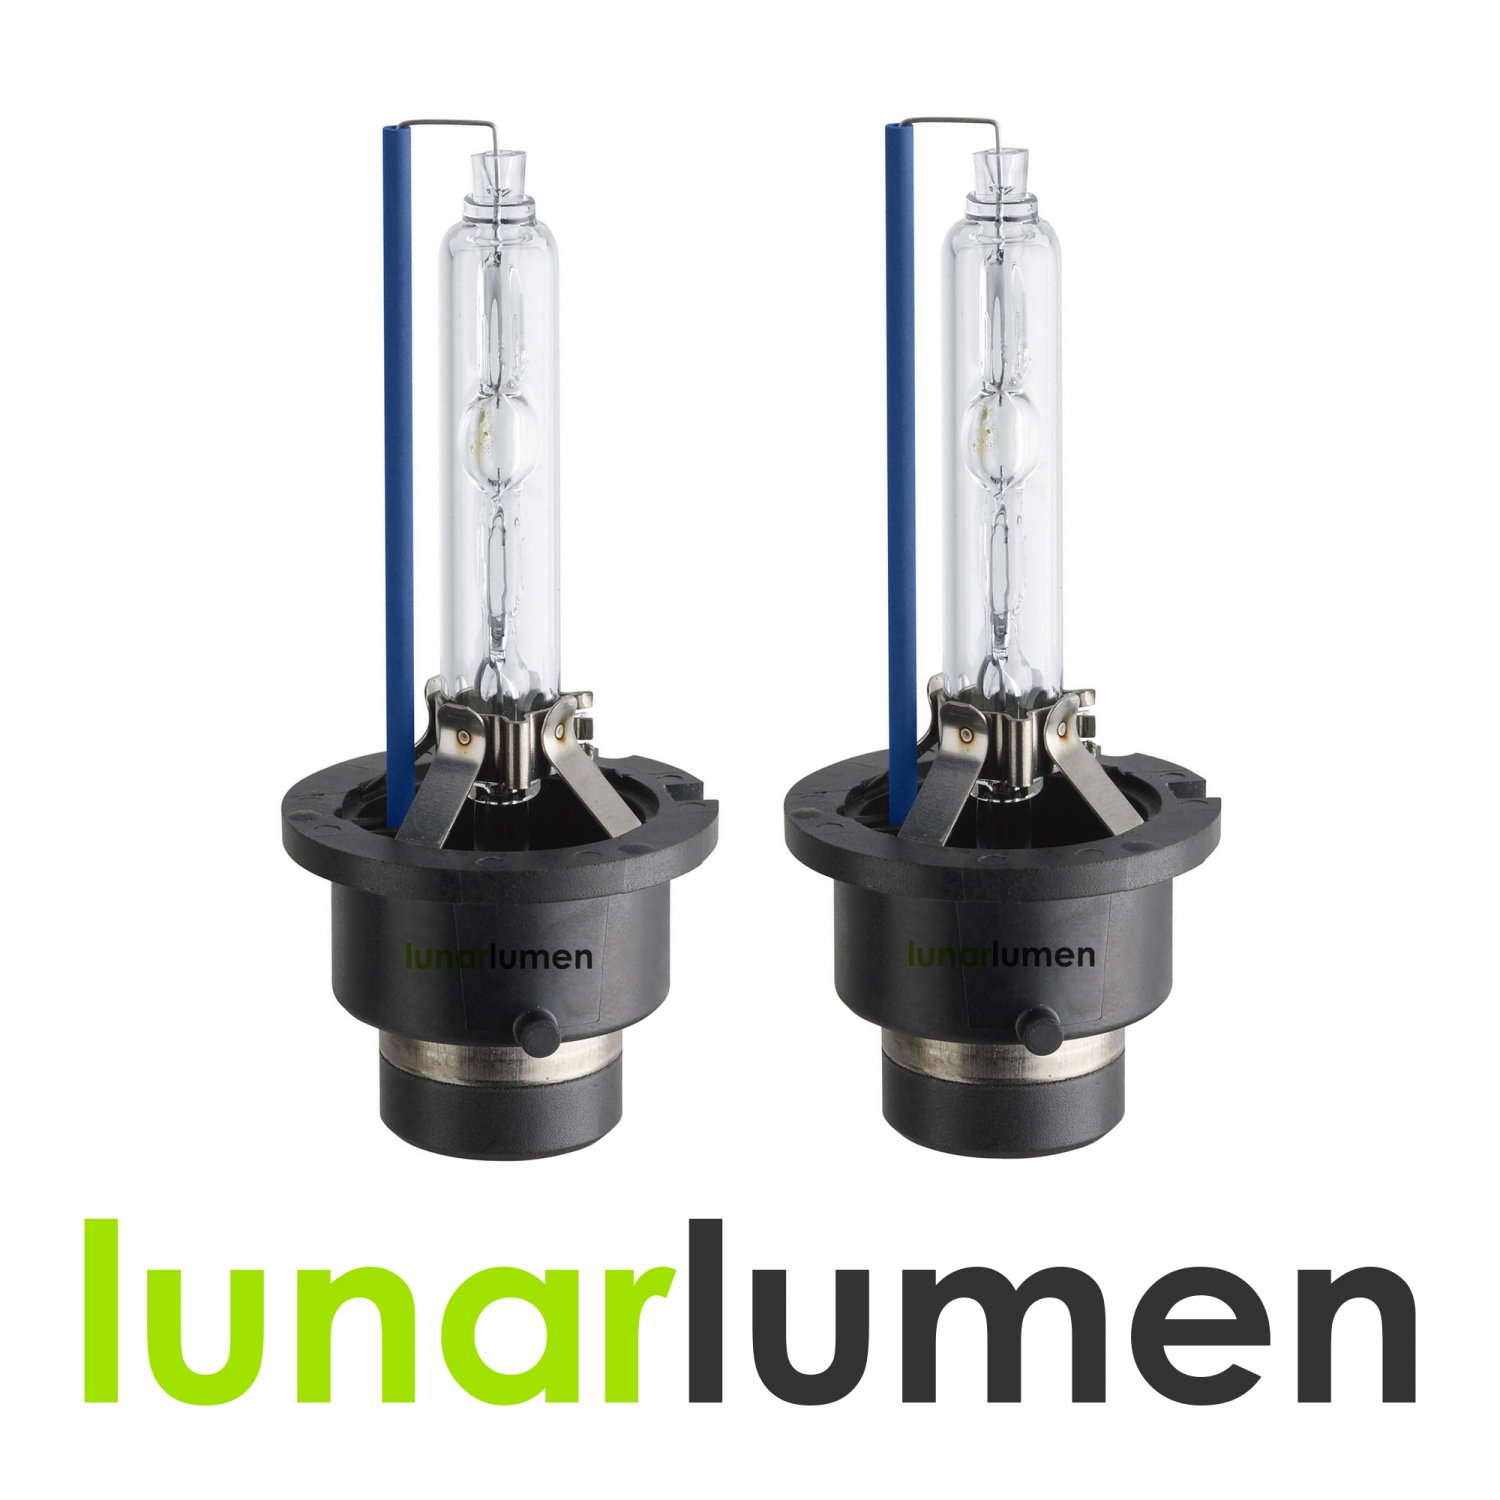 2 x Lunar Lumen D4S HID Xenon Headlight Bulbs 10000K